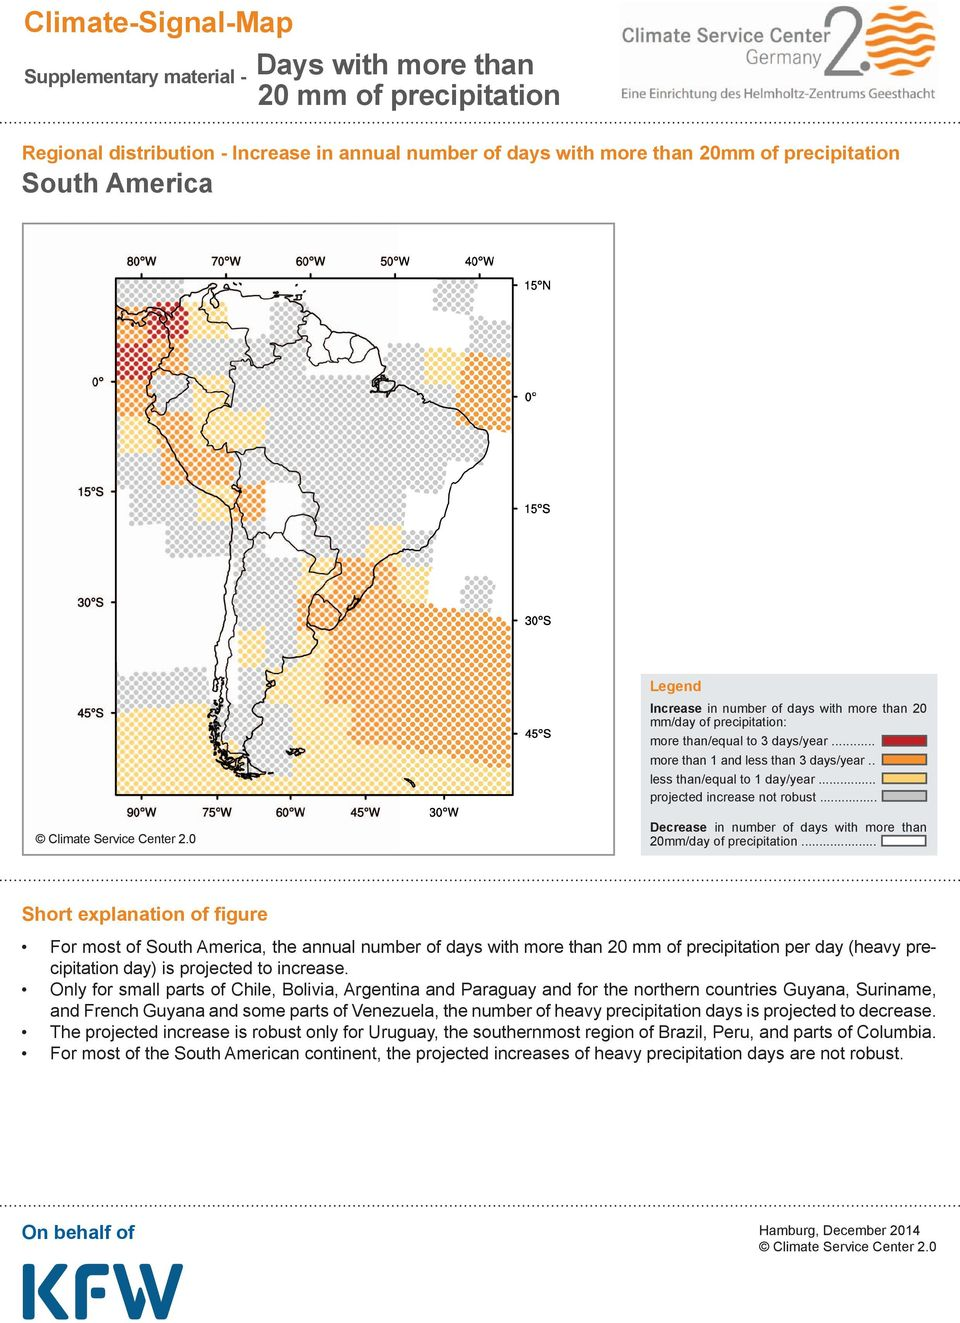 Venezuela, the number of heavy precipitation days is projected to decrease.